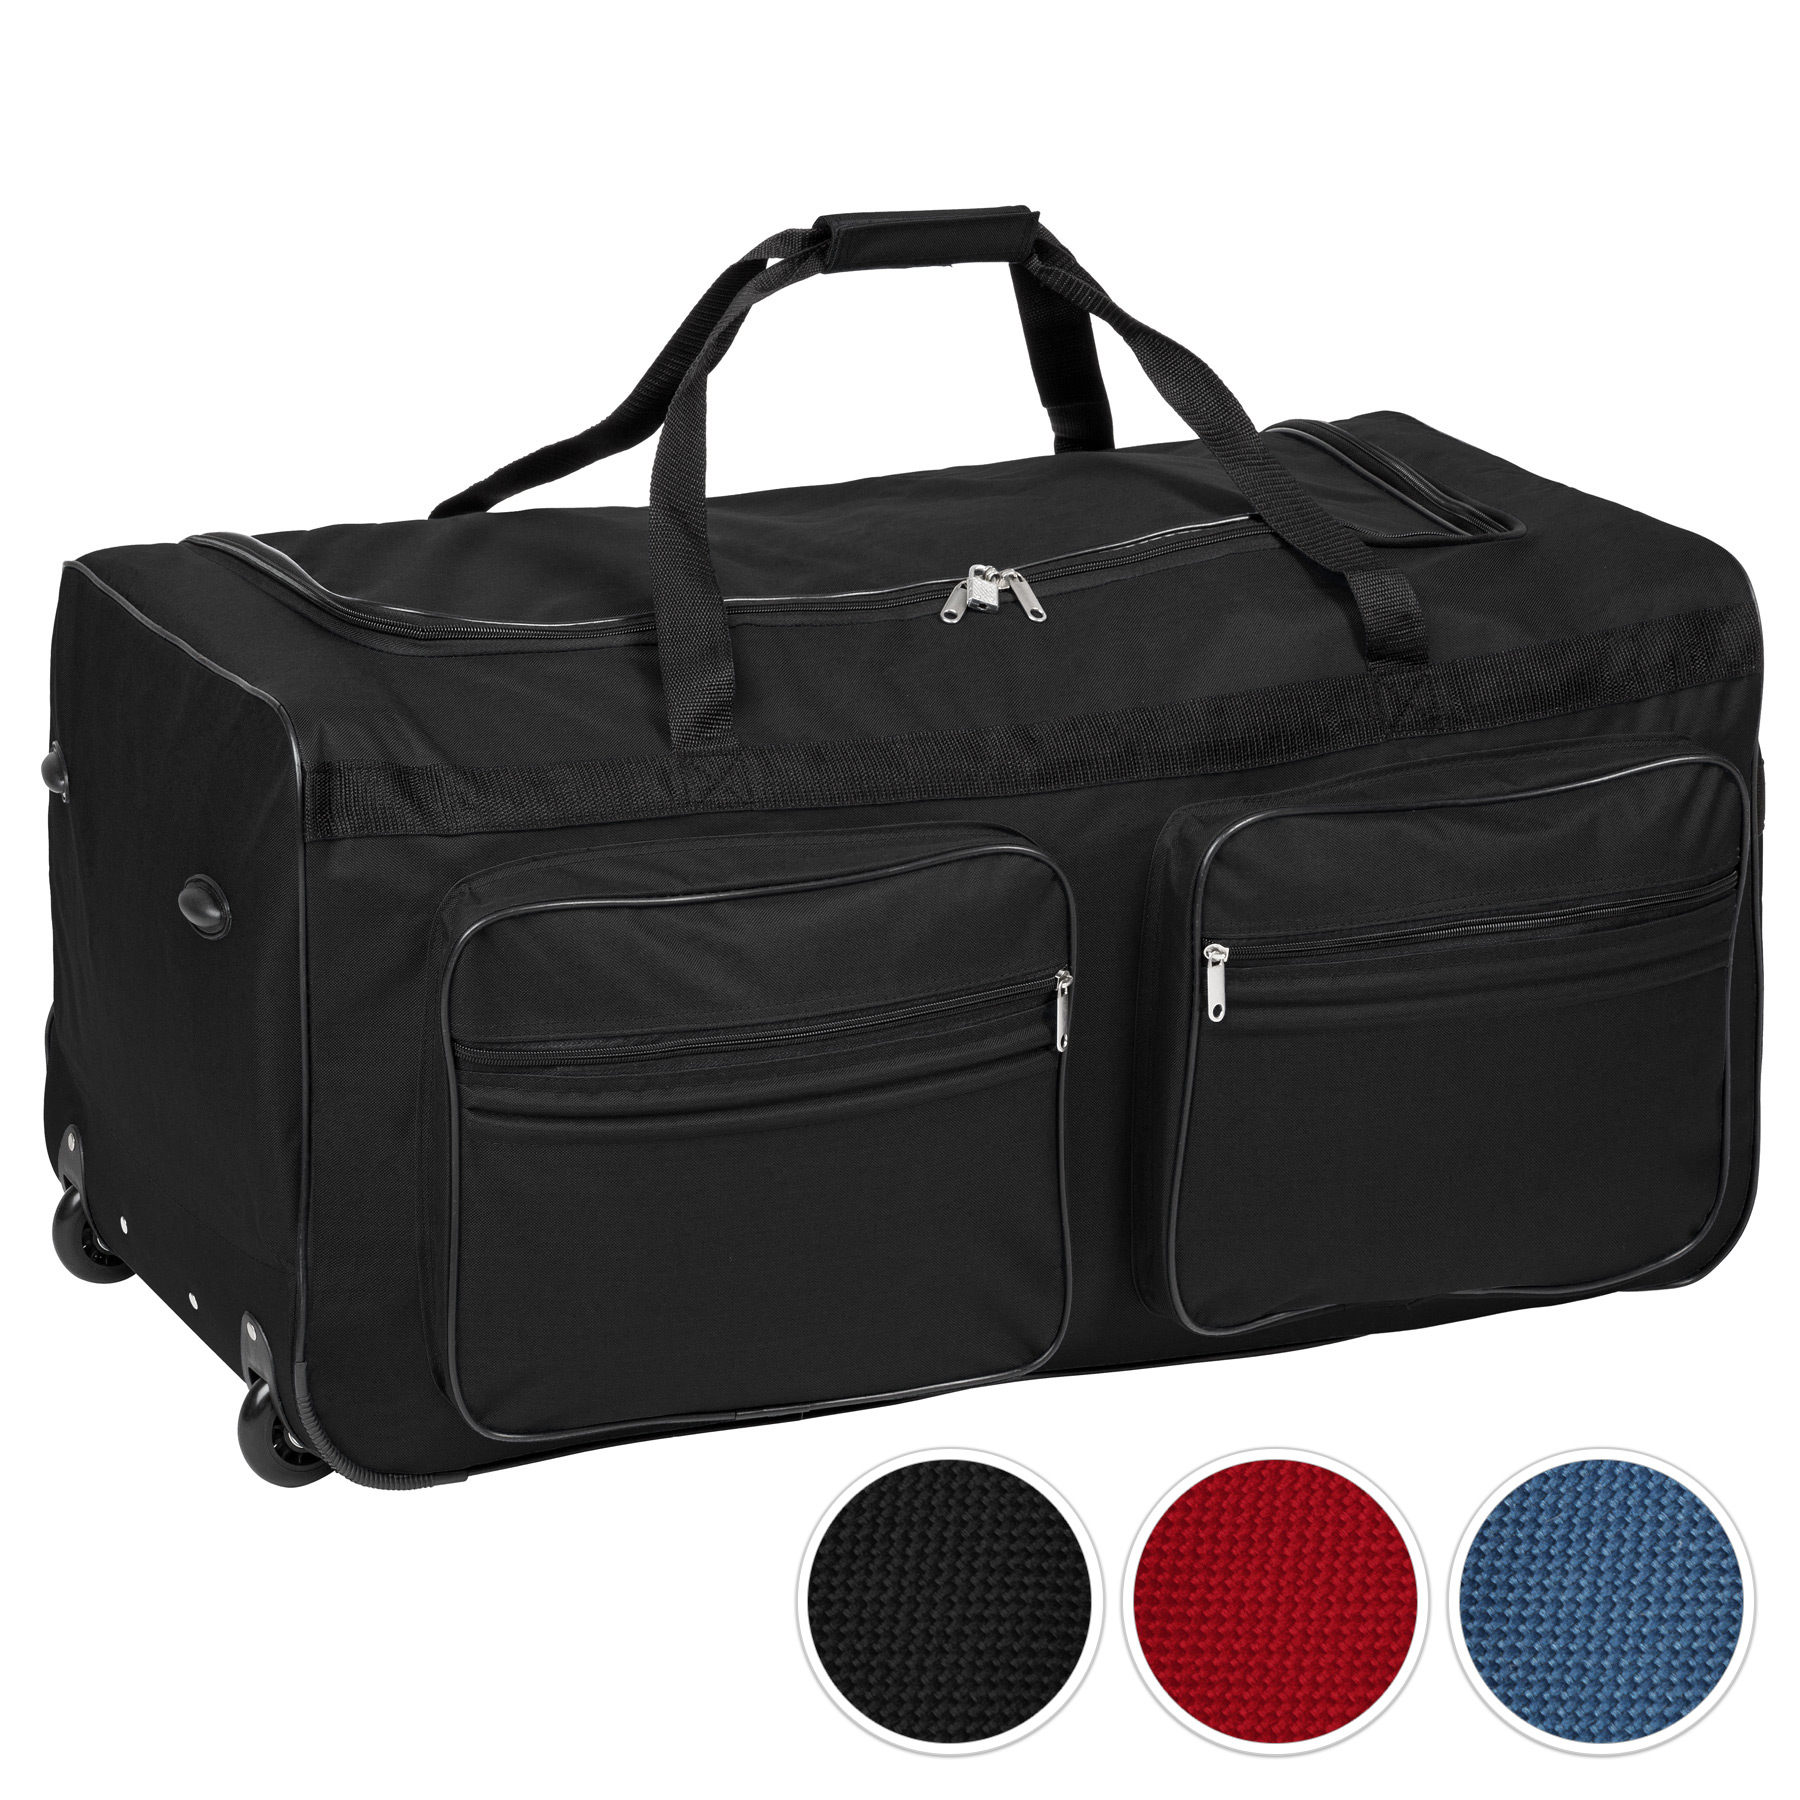 sac de voyage xxl valise trolley l g re sport bagage roulettes 160 litres ebay. Black Bedroom Furniture Sets. Home Design Ideas